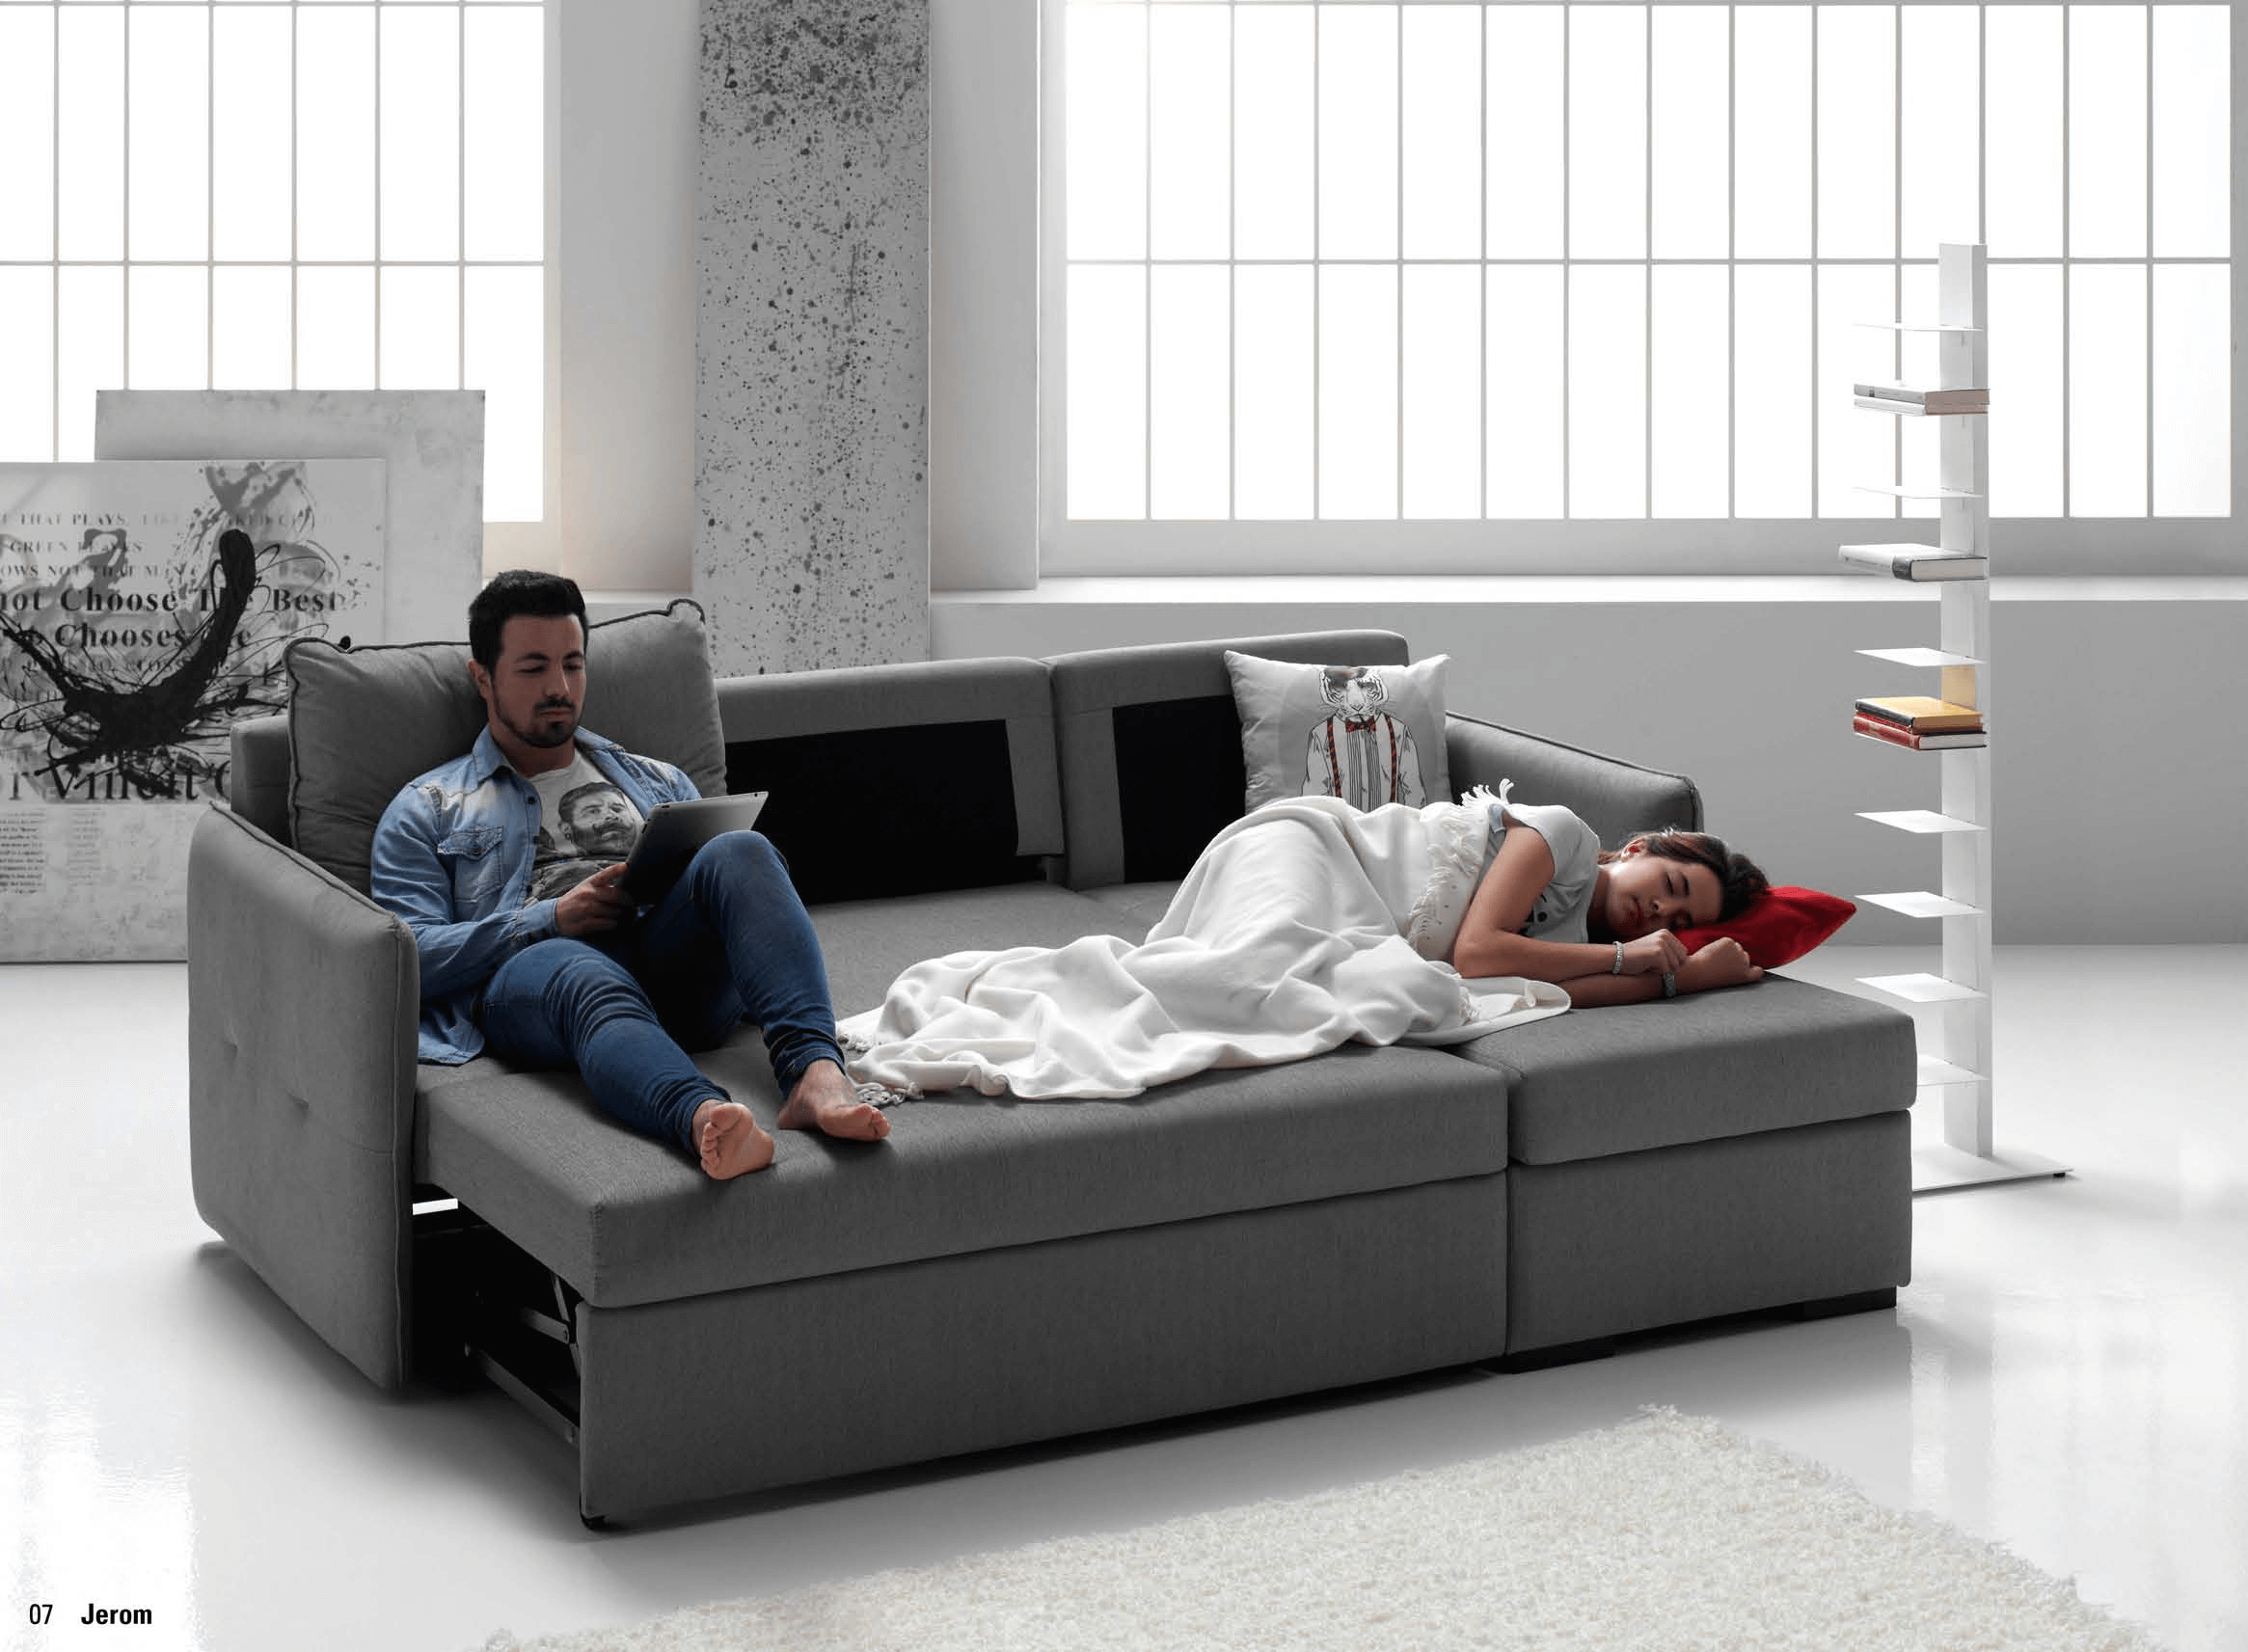 Sofa cama con chaislongue muebles sipo for Sofa cama 1 persona